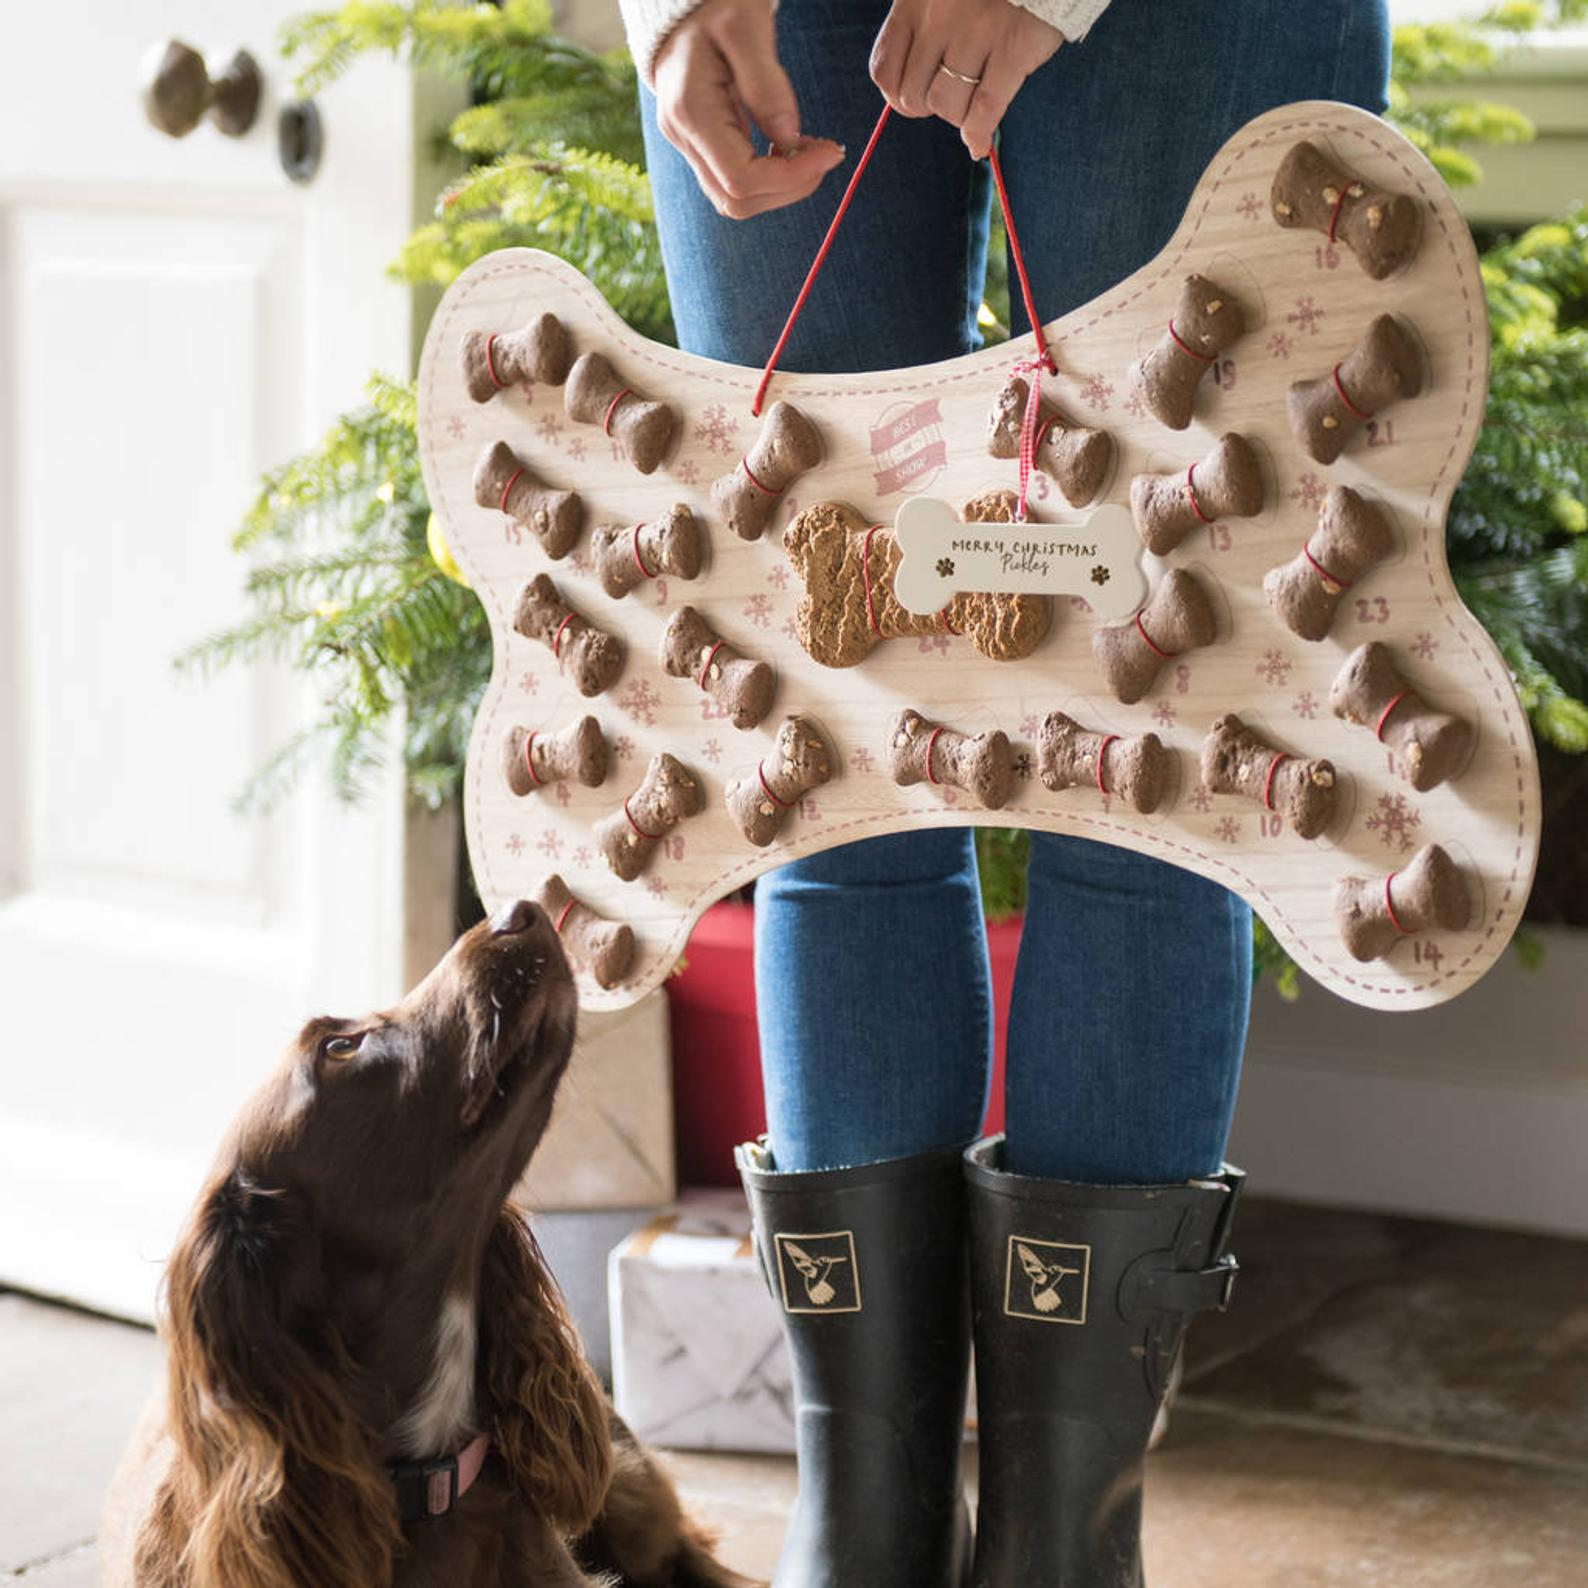 16 Super Cute Dog Advent Calendars for 2020 feat. 'Refillable Dog Biscuit Advent Calendar' (via LetterRoom/Etsy)